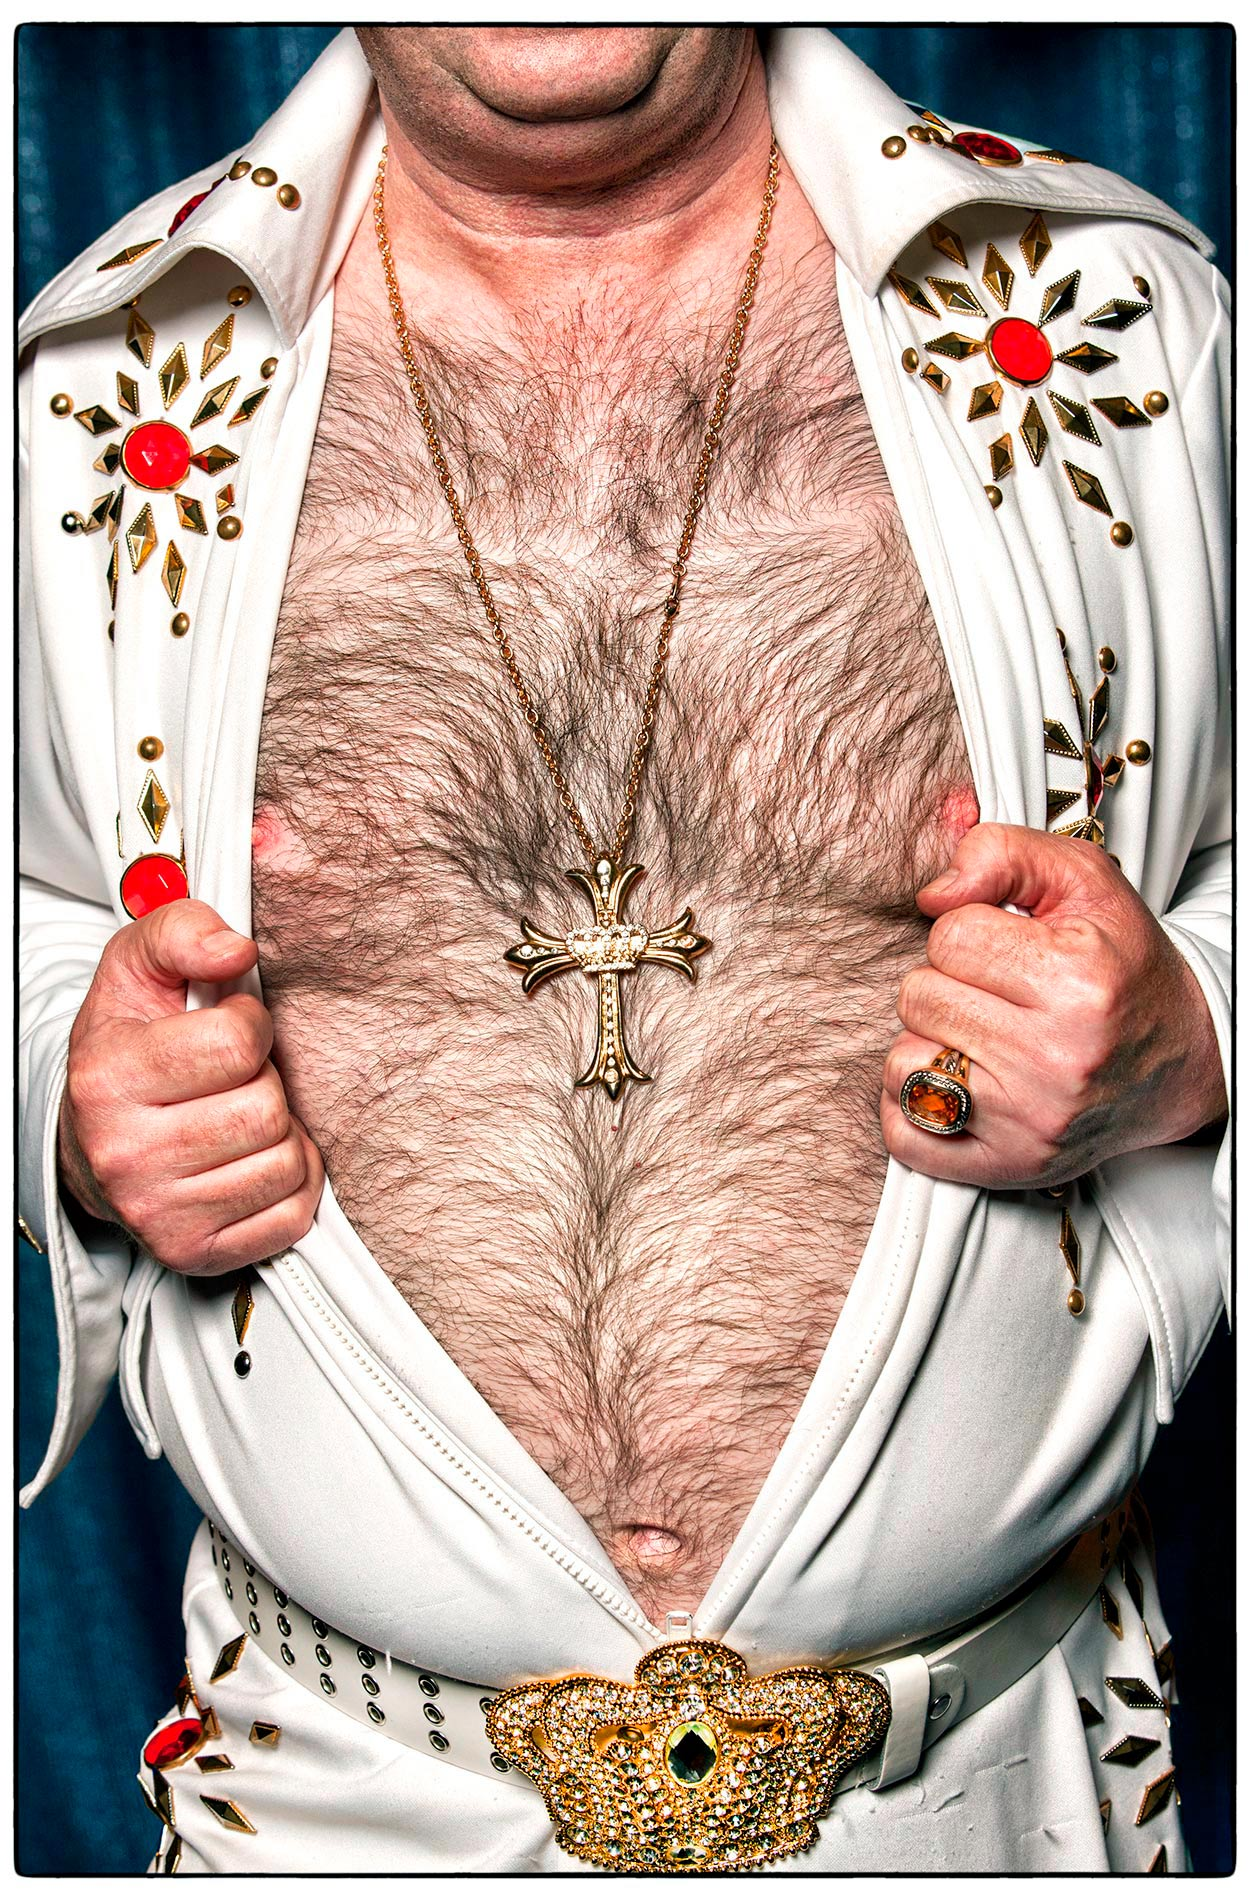 an-elvis-impersonator-shows-off-his-hairy-chest-and-fake-diamond-elvis-replica-cross-in-las-vegas